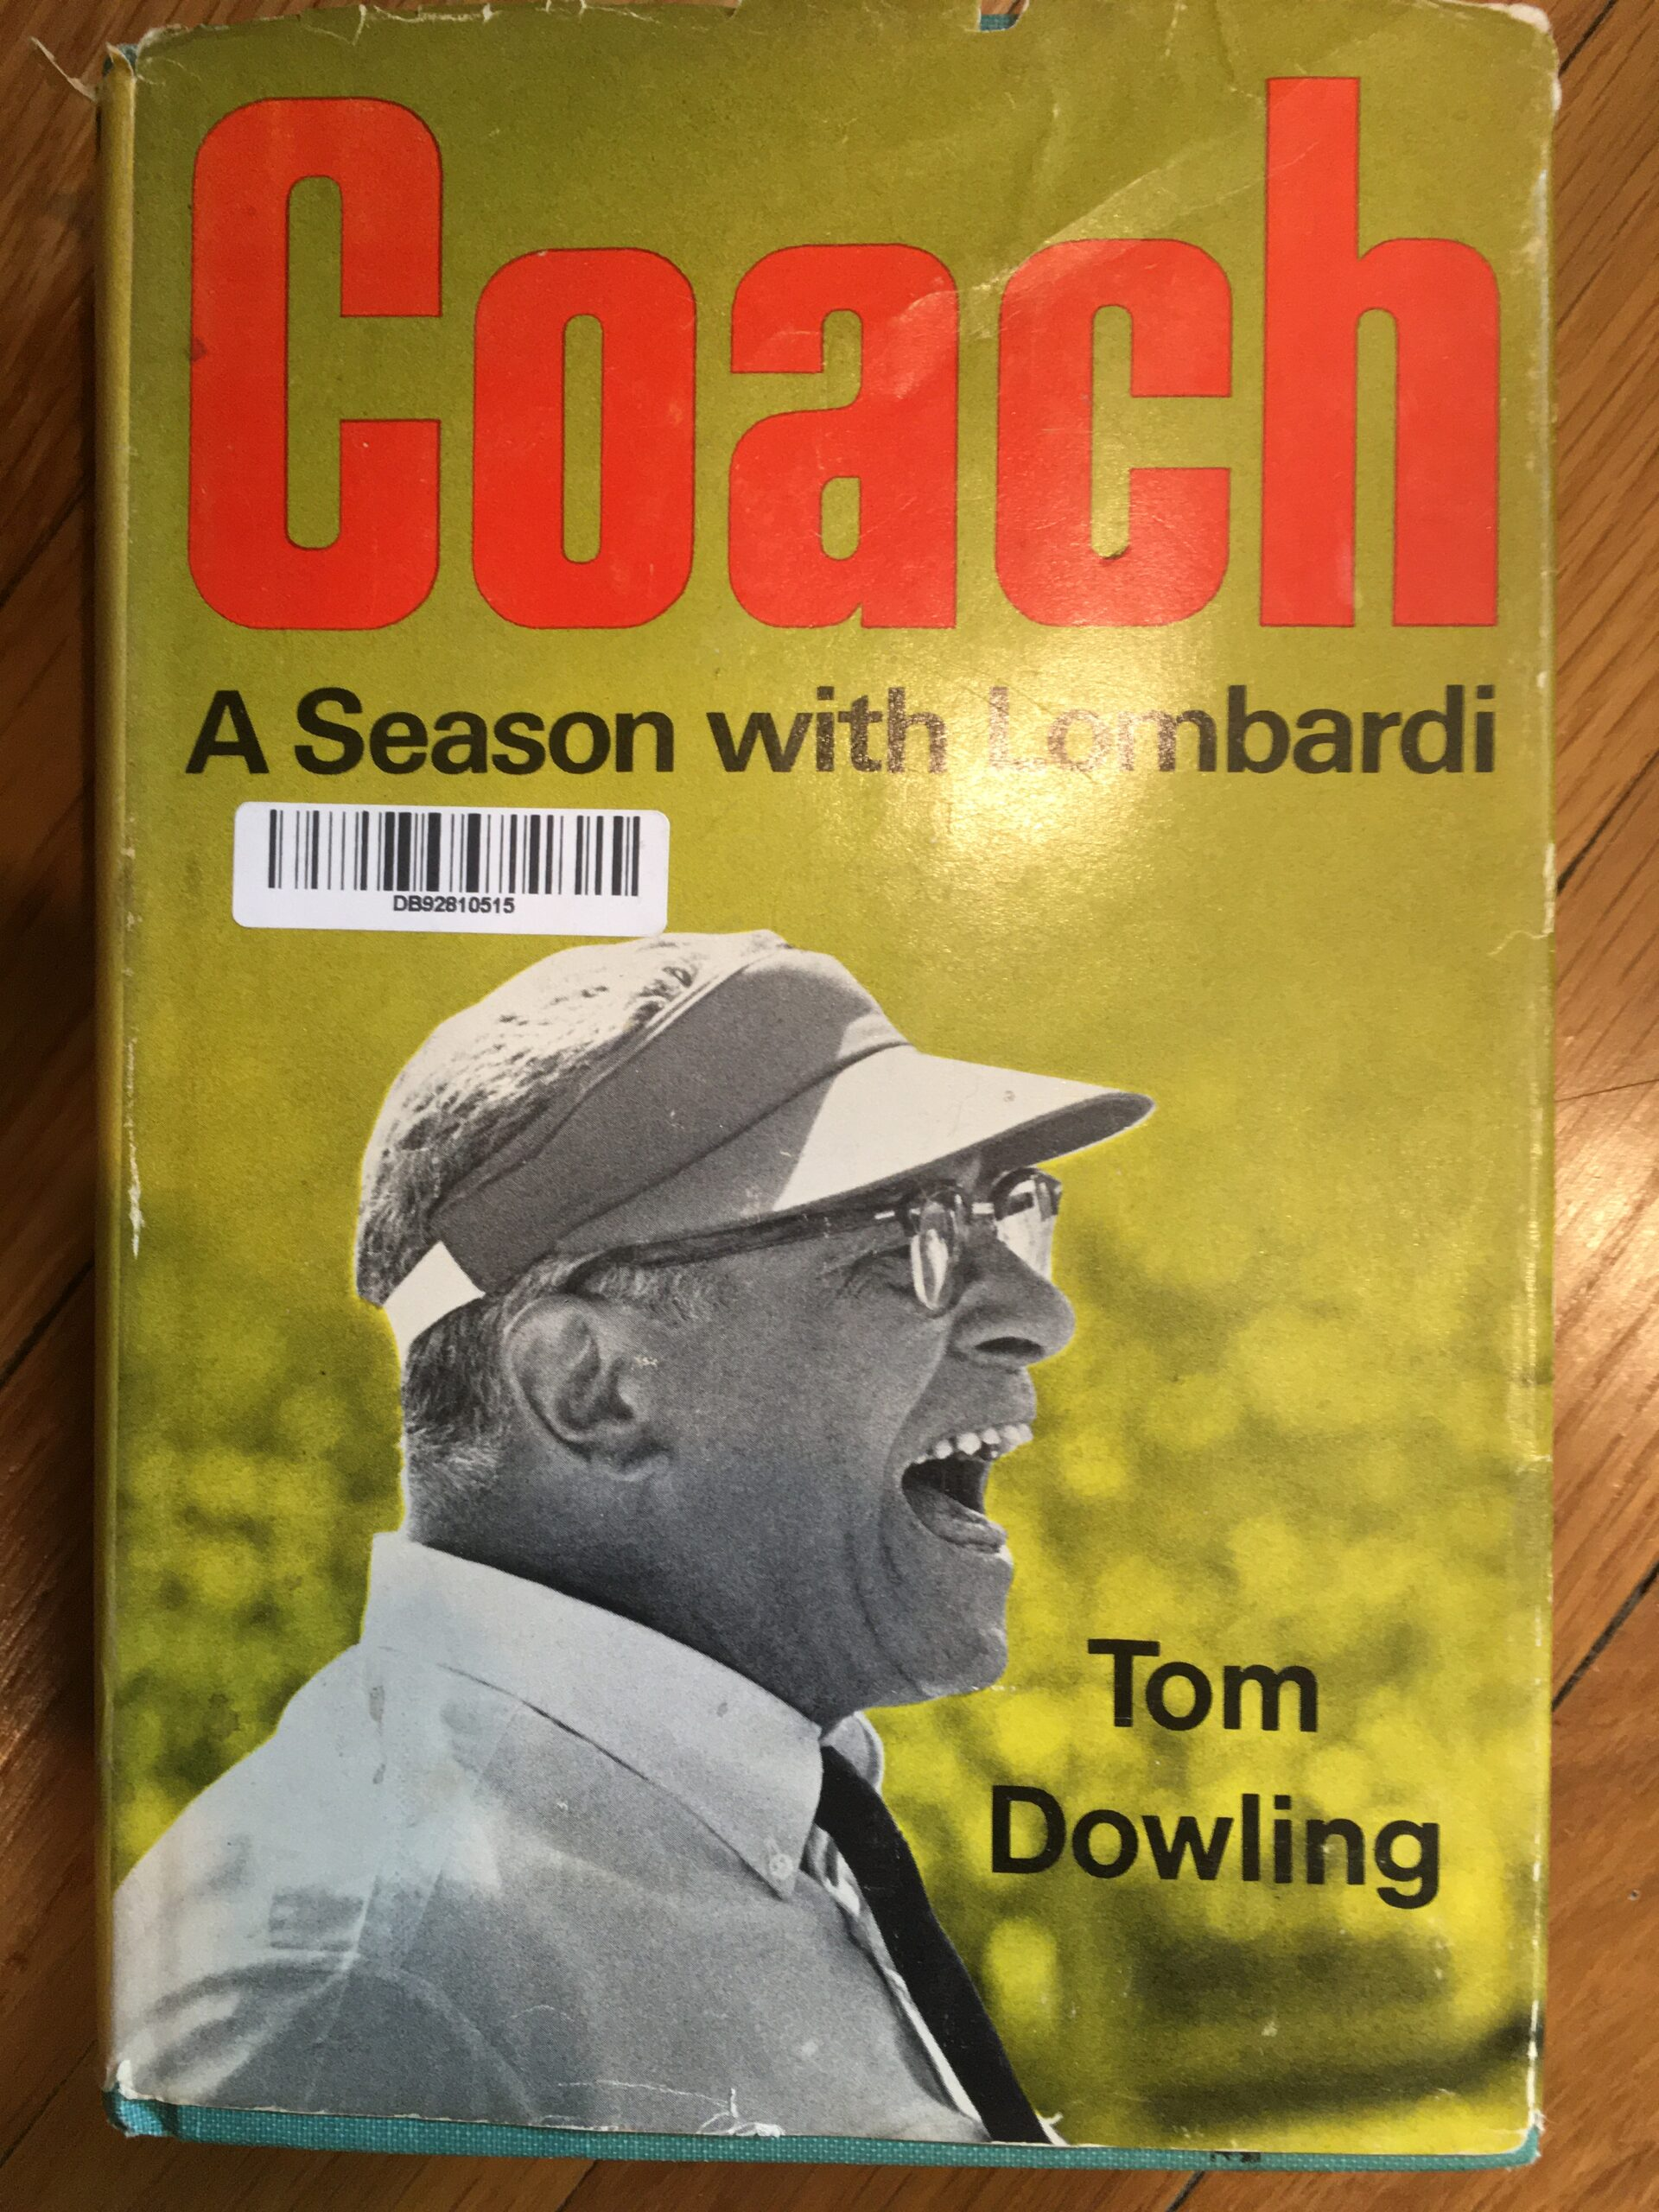 Book jacket of a biography of Vince Lumbardi by Tom Dowling